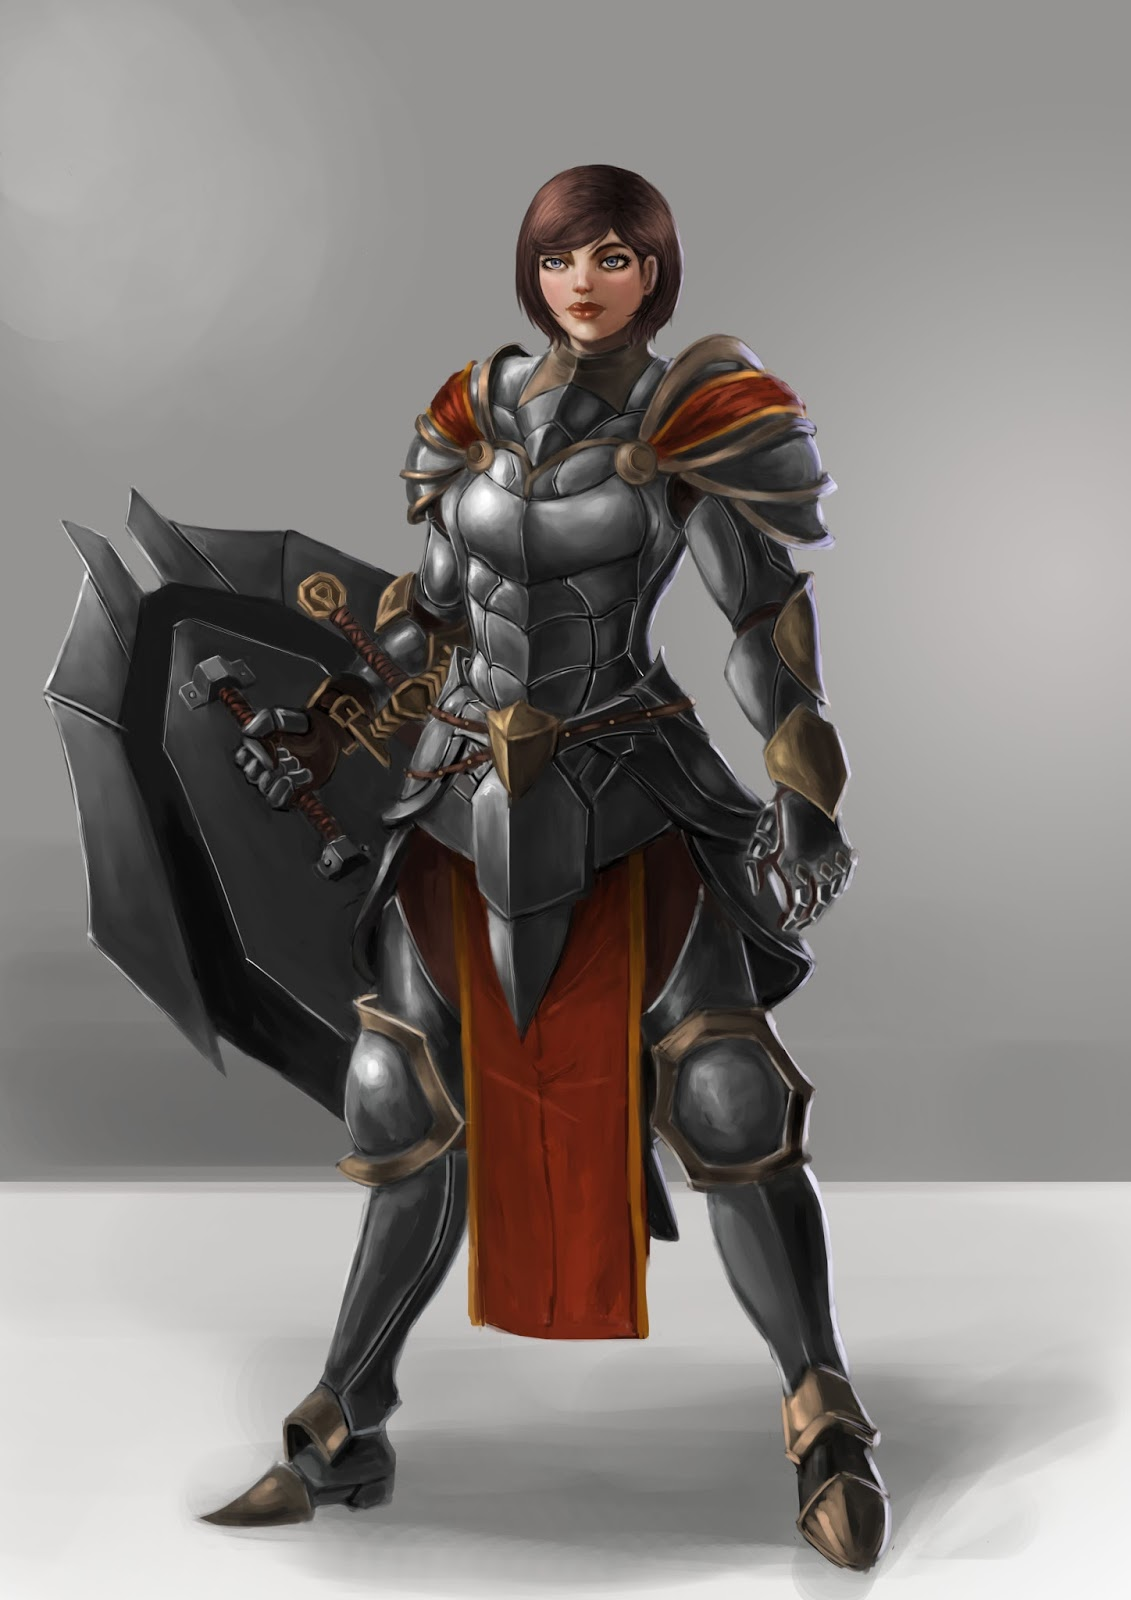 Lady_knight_copy.JPG